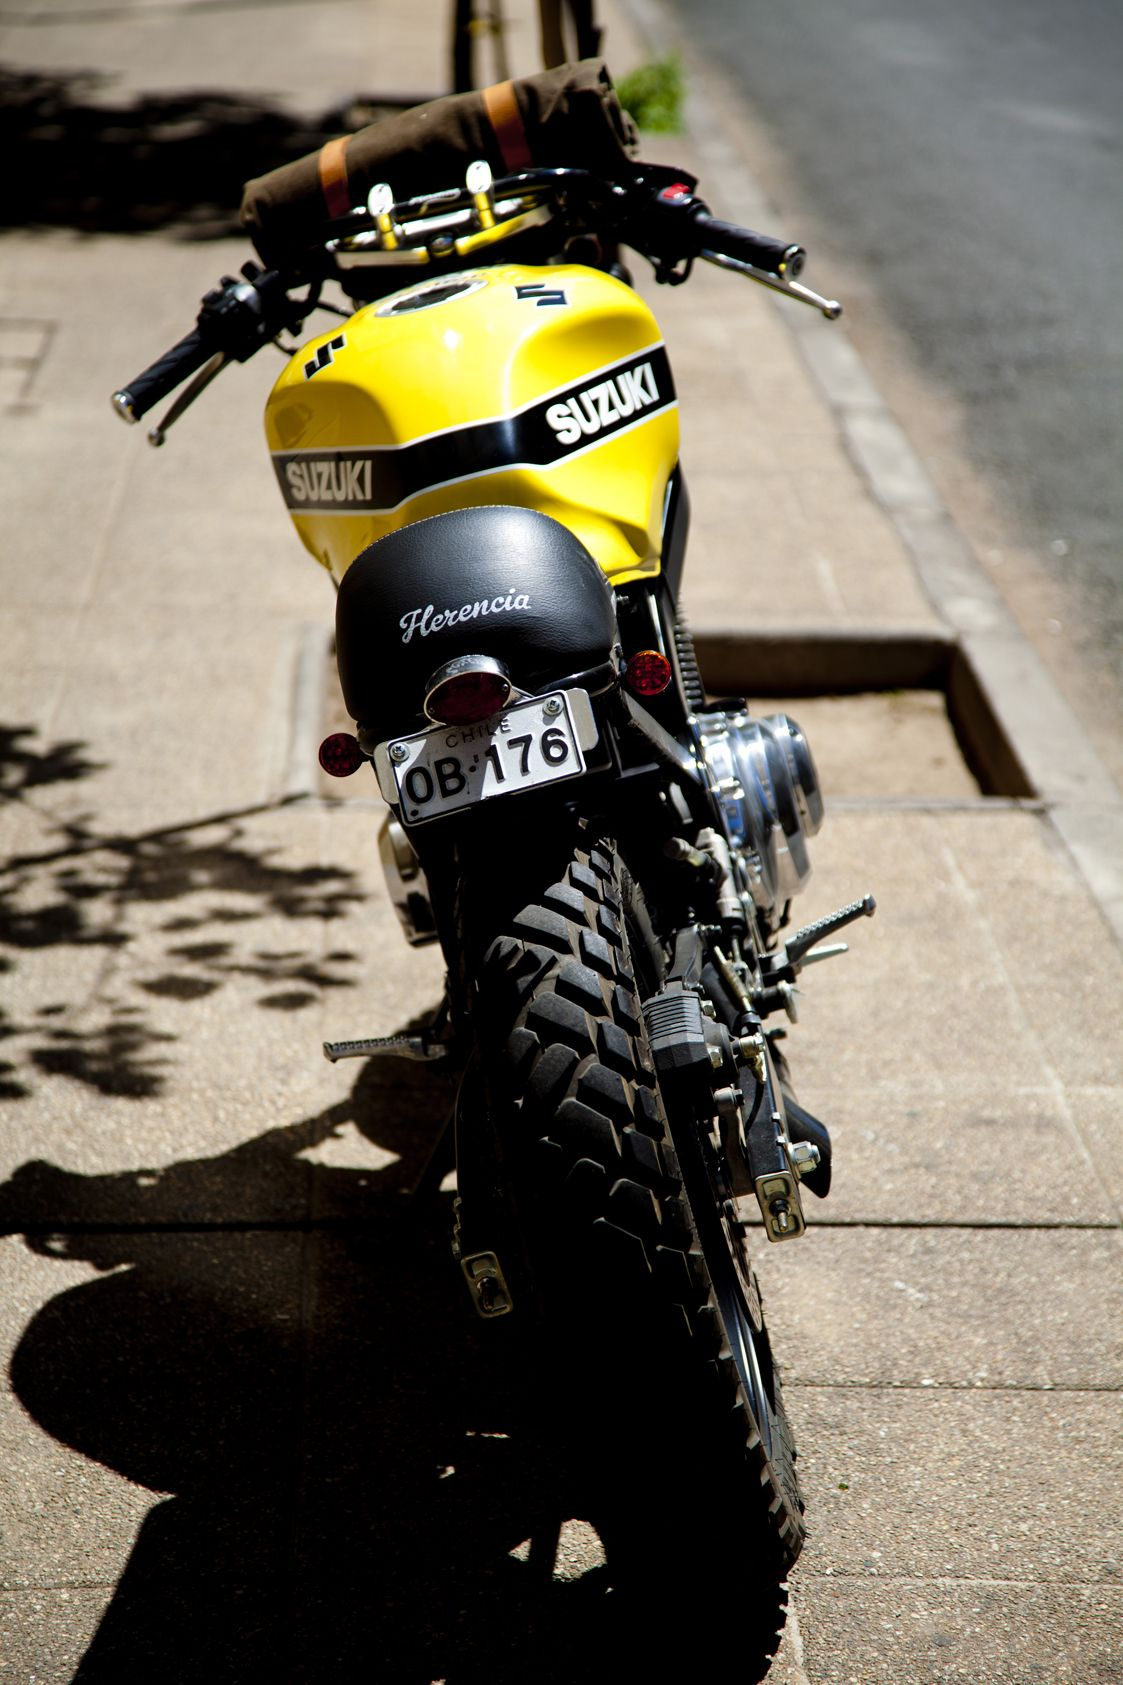 11 jpg | suzuki | pinterest | scrambler, wheels and cars 11 jpg